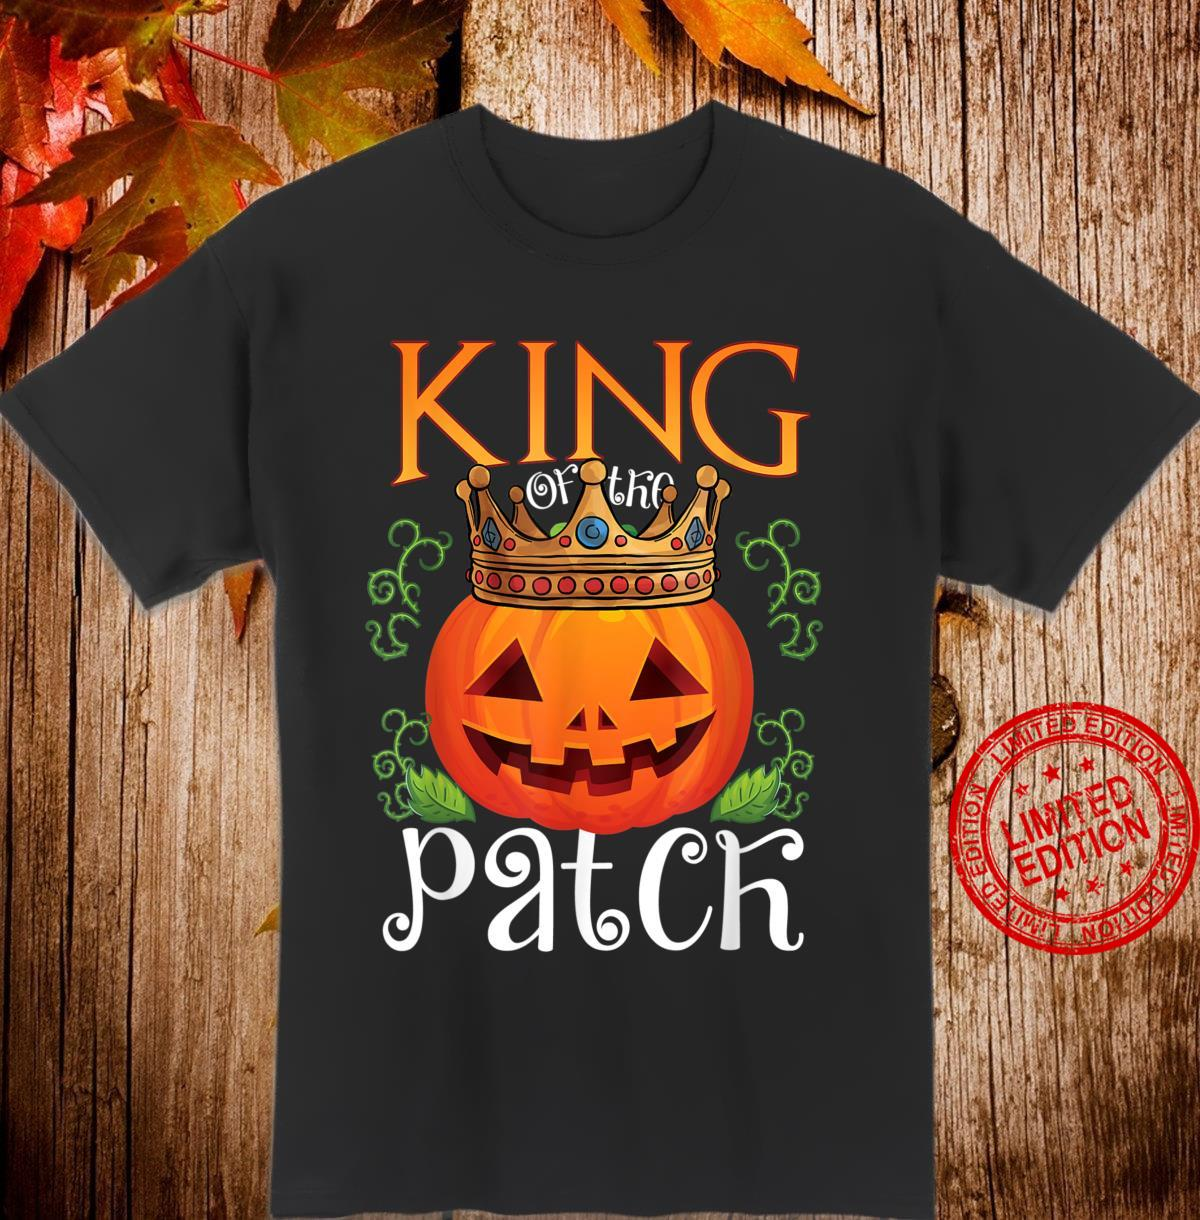 Funny King of the Patch Halloween Costume Shirt Shirt